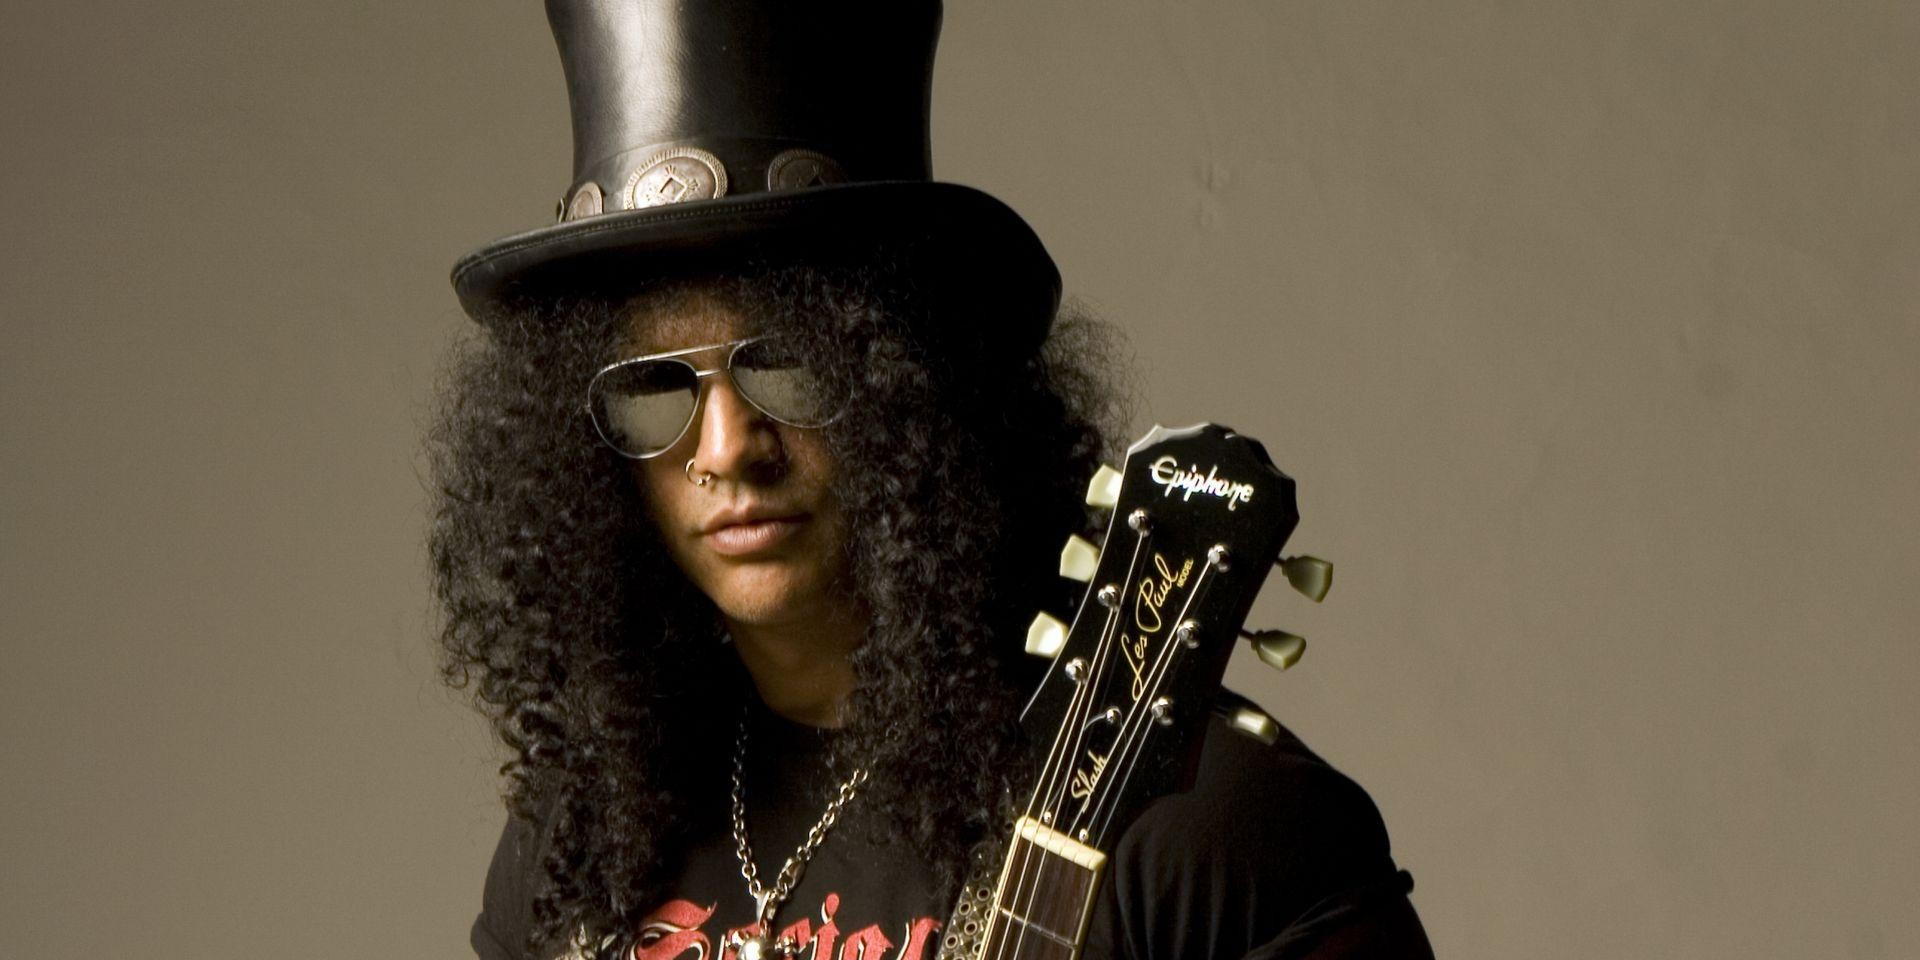 """""""We didn't cater to the status quo or try to be industry darlings"""": An interview with Slash"""